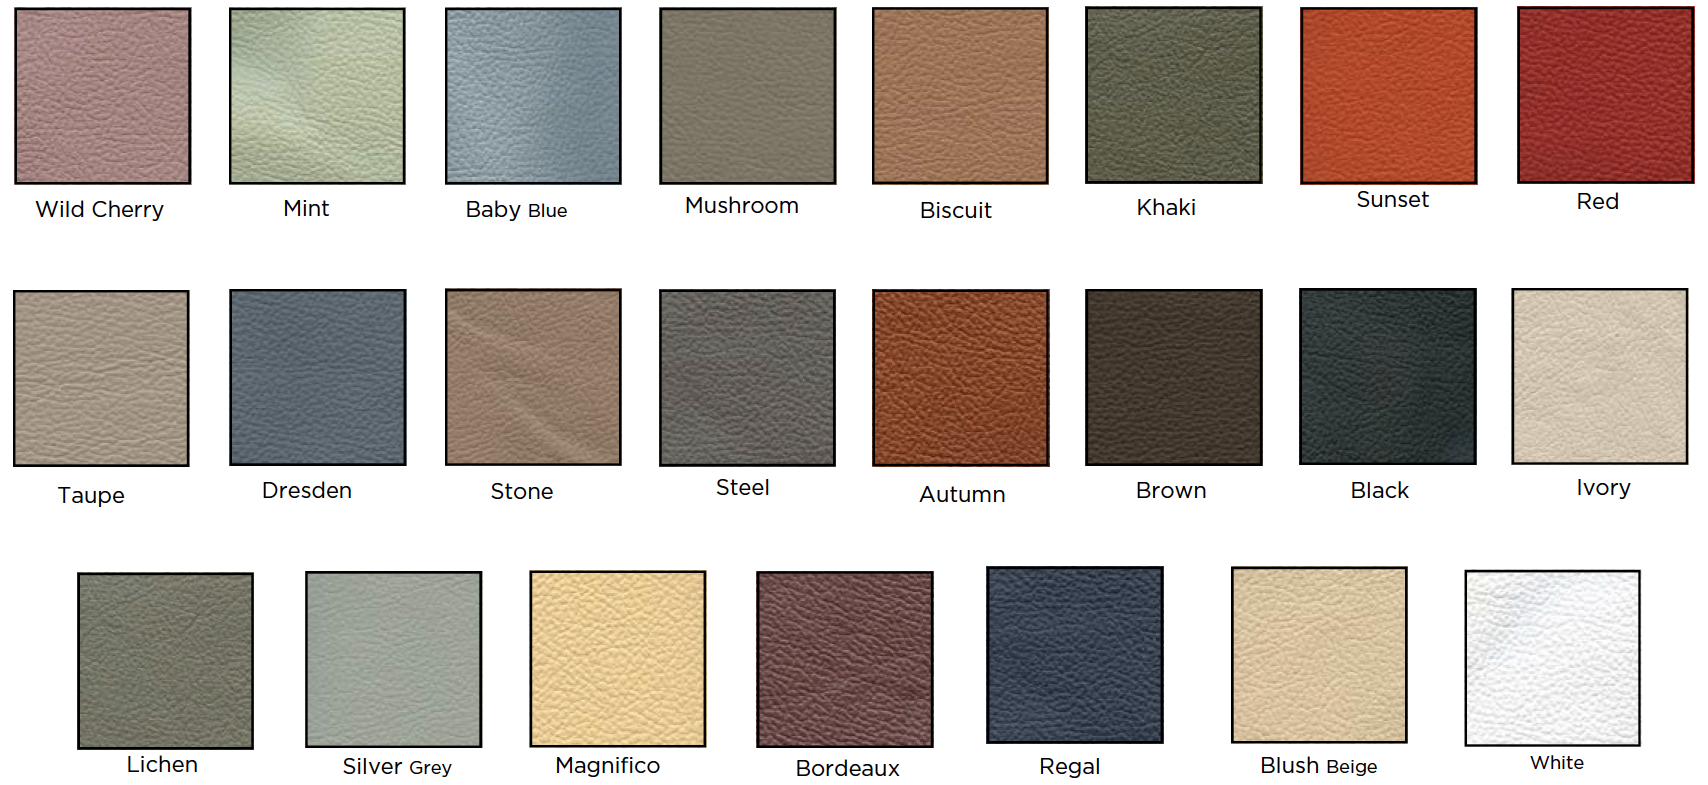 Leather colour options